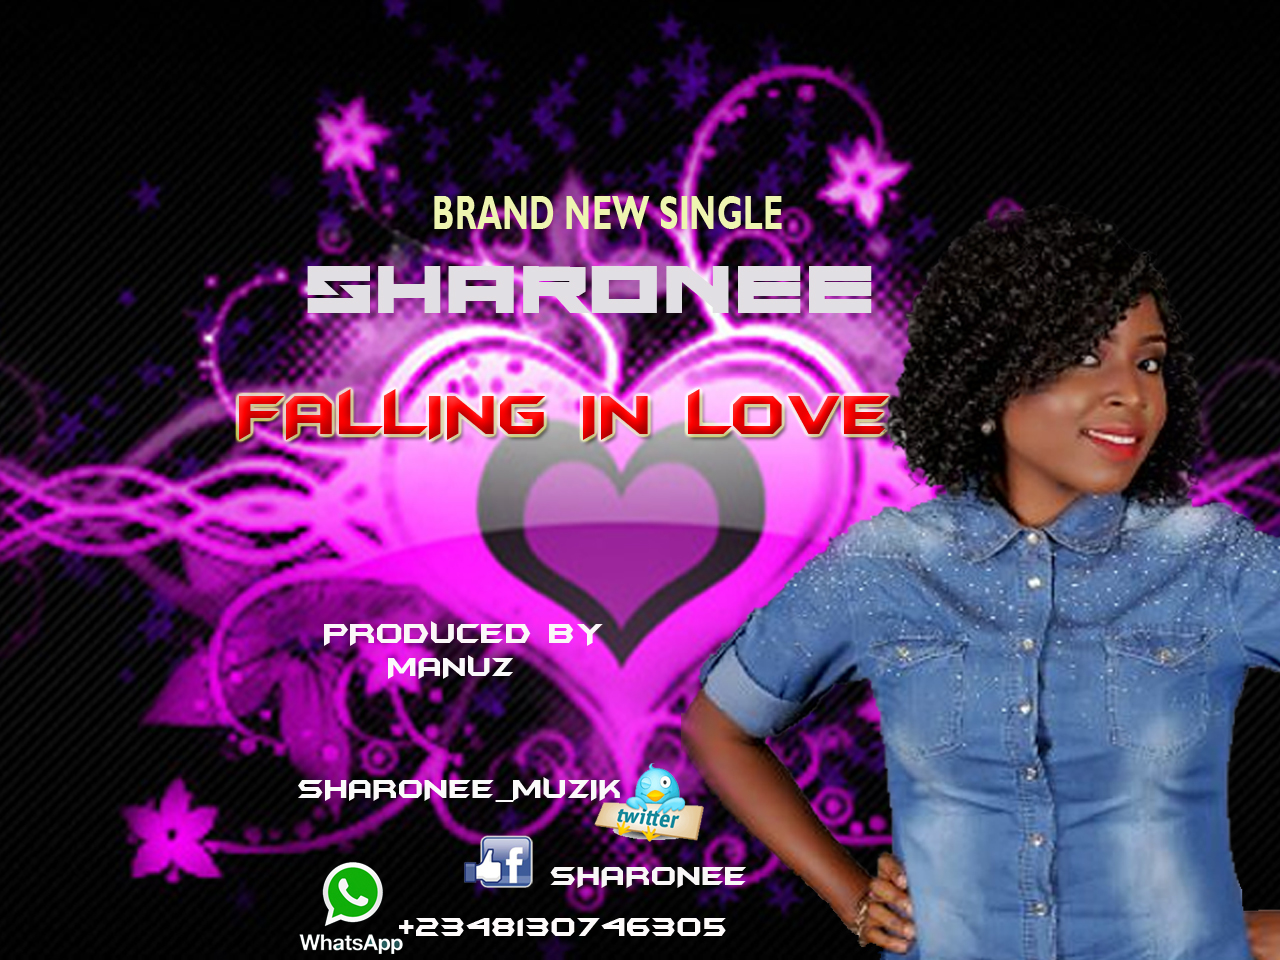 FALLING IN LOVE - Sharonee [@Sharonee_muzik]